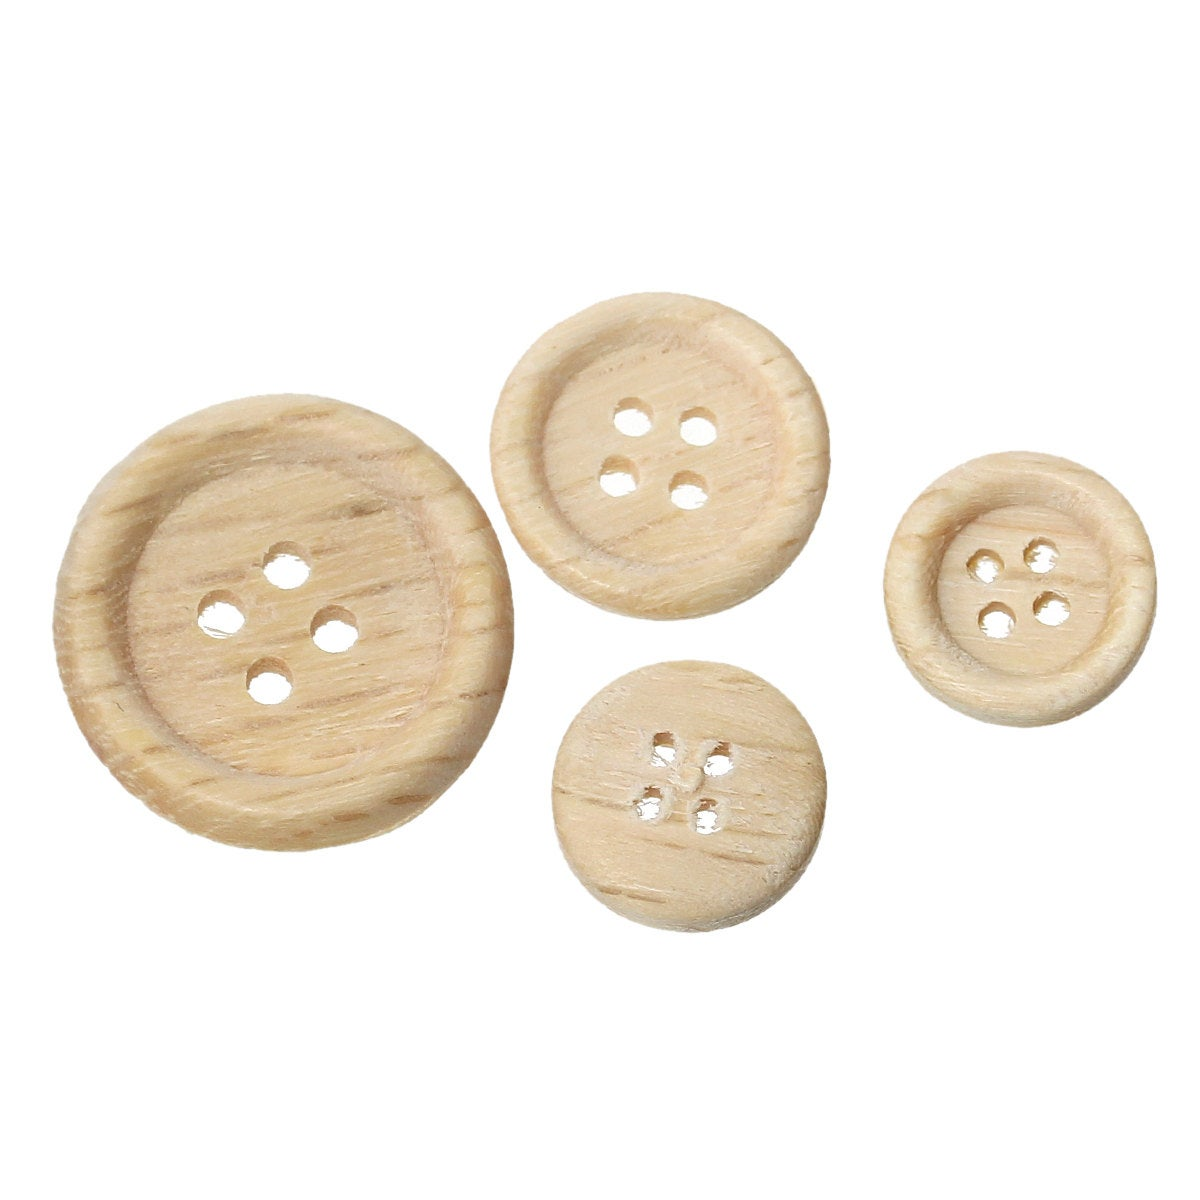 100 Natural Wooden Buttons - Mixed Sizes from 25mm (1 inch) to 8mm (1/3 inch) -  4 hole